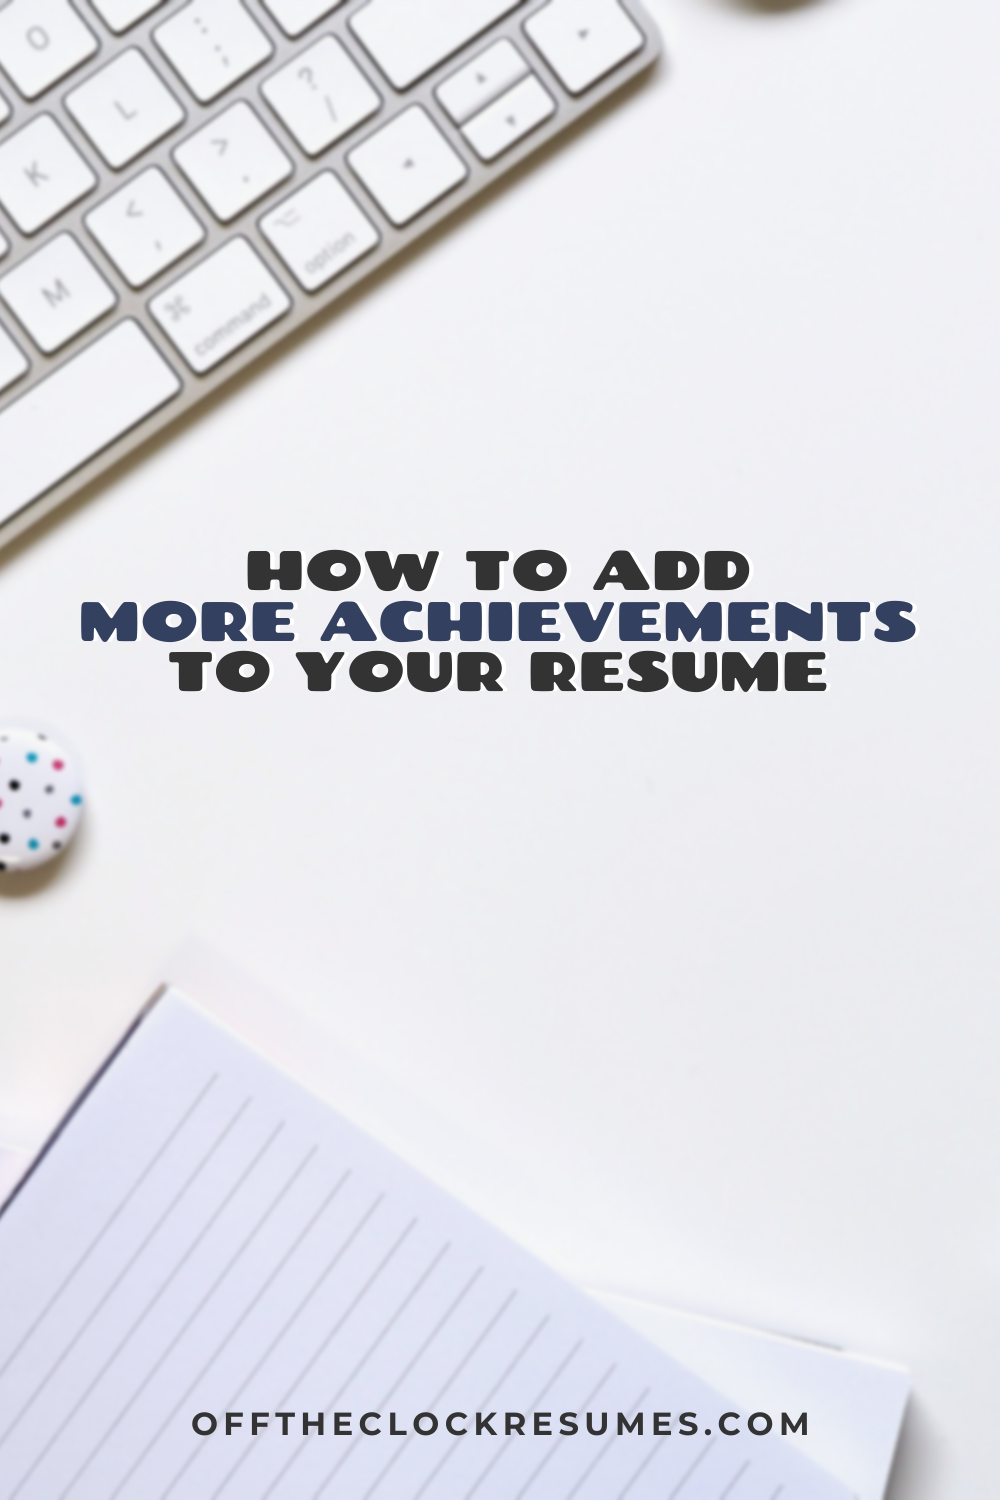 How To Add More Achievements To Your Resume